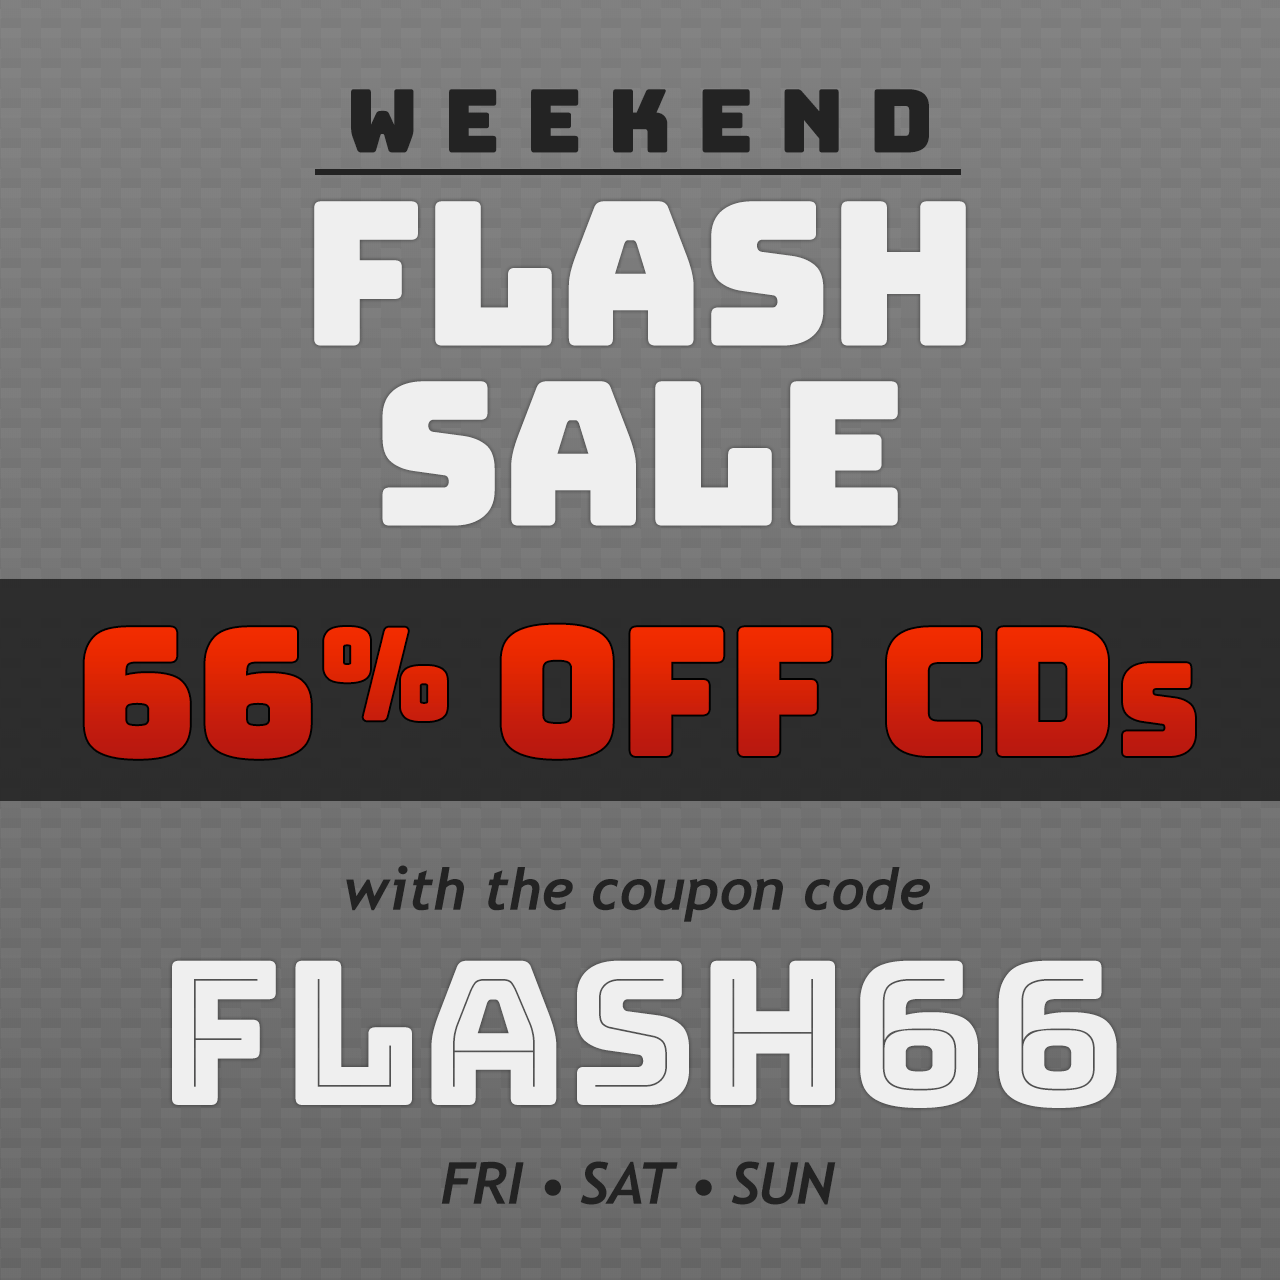 Promo graphic - use coupon code FLASH66 to get 66% off CDs this weekend